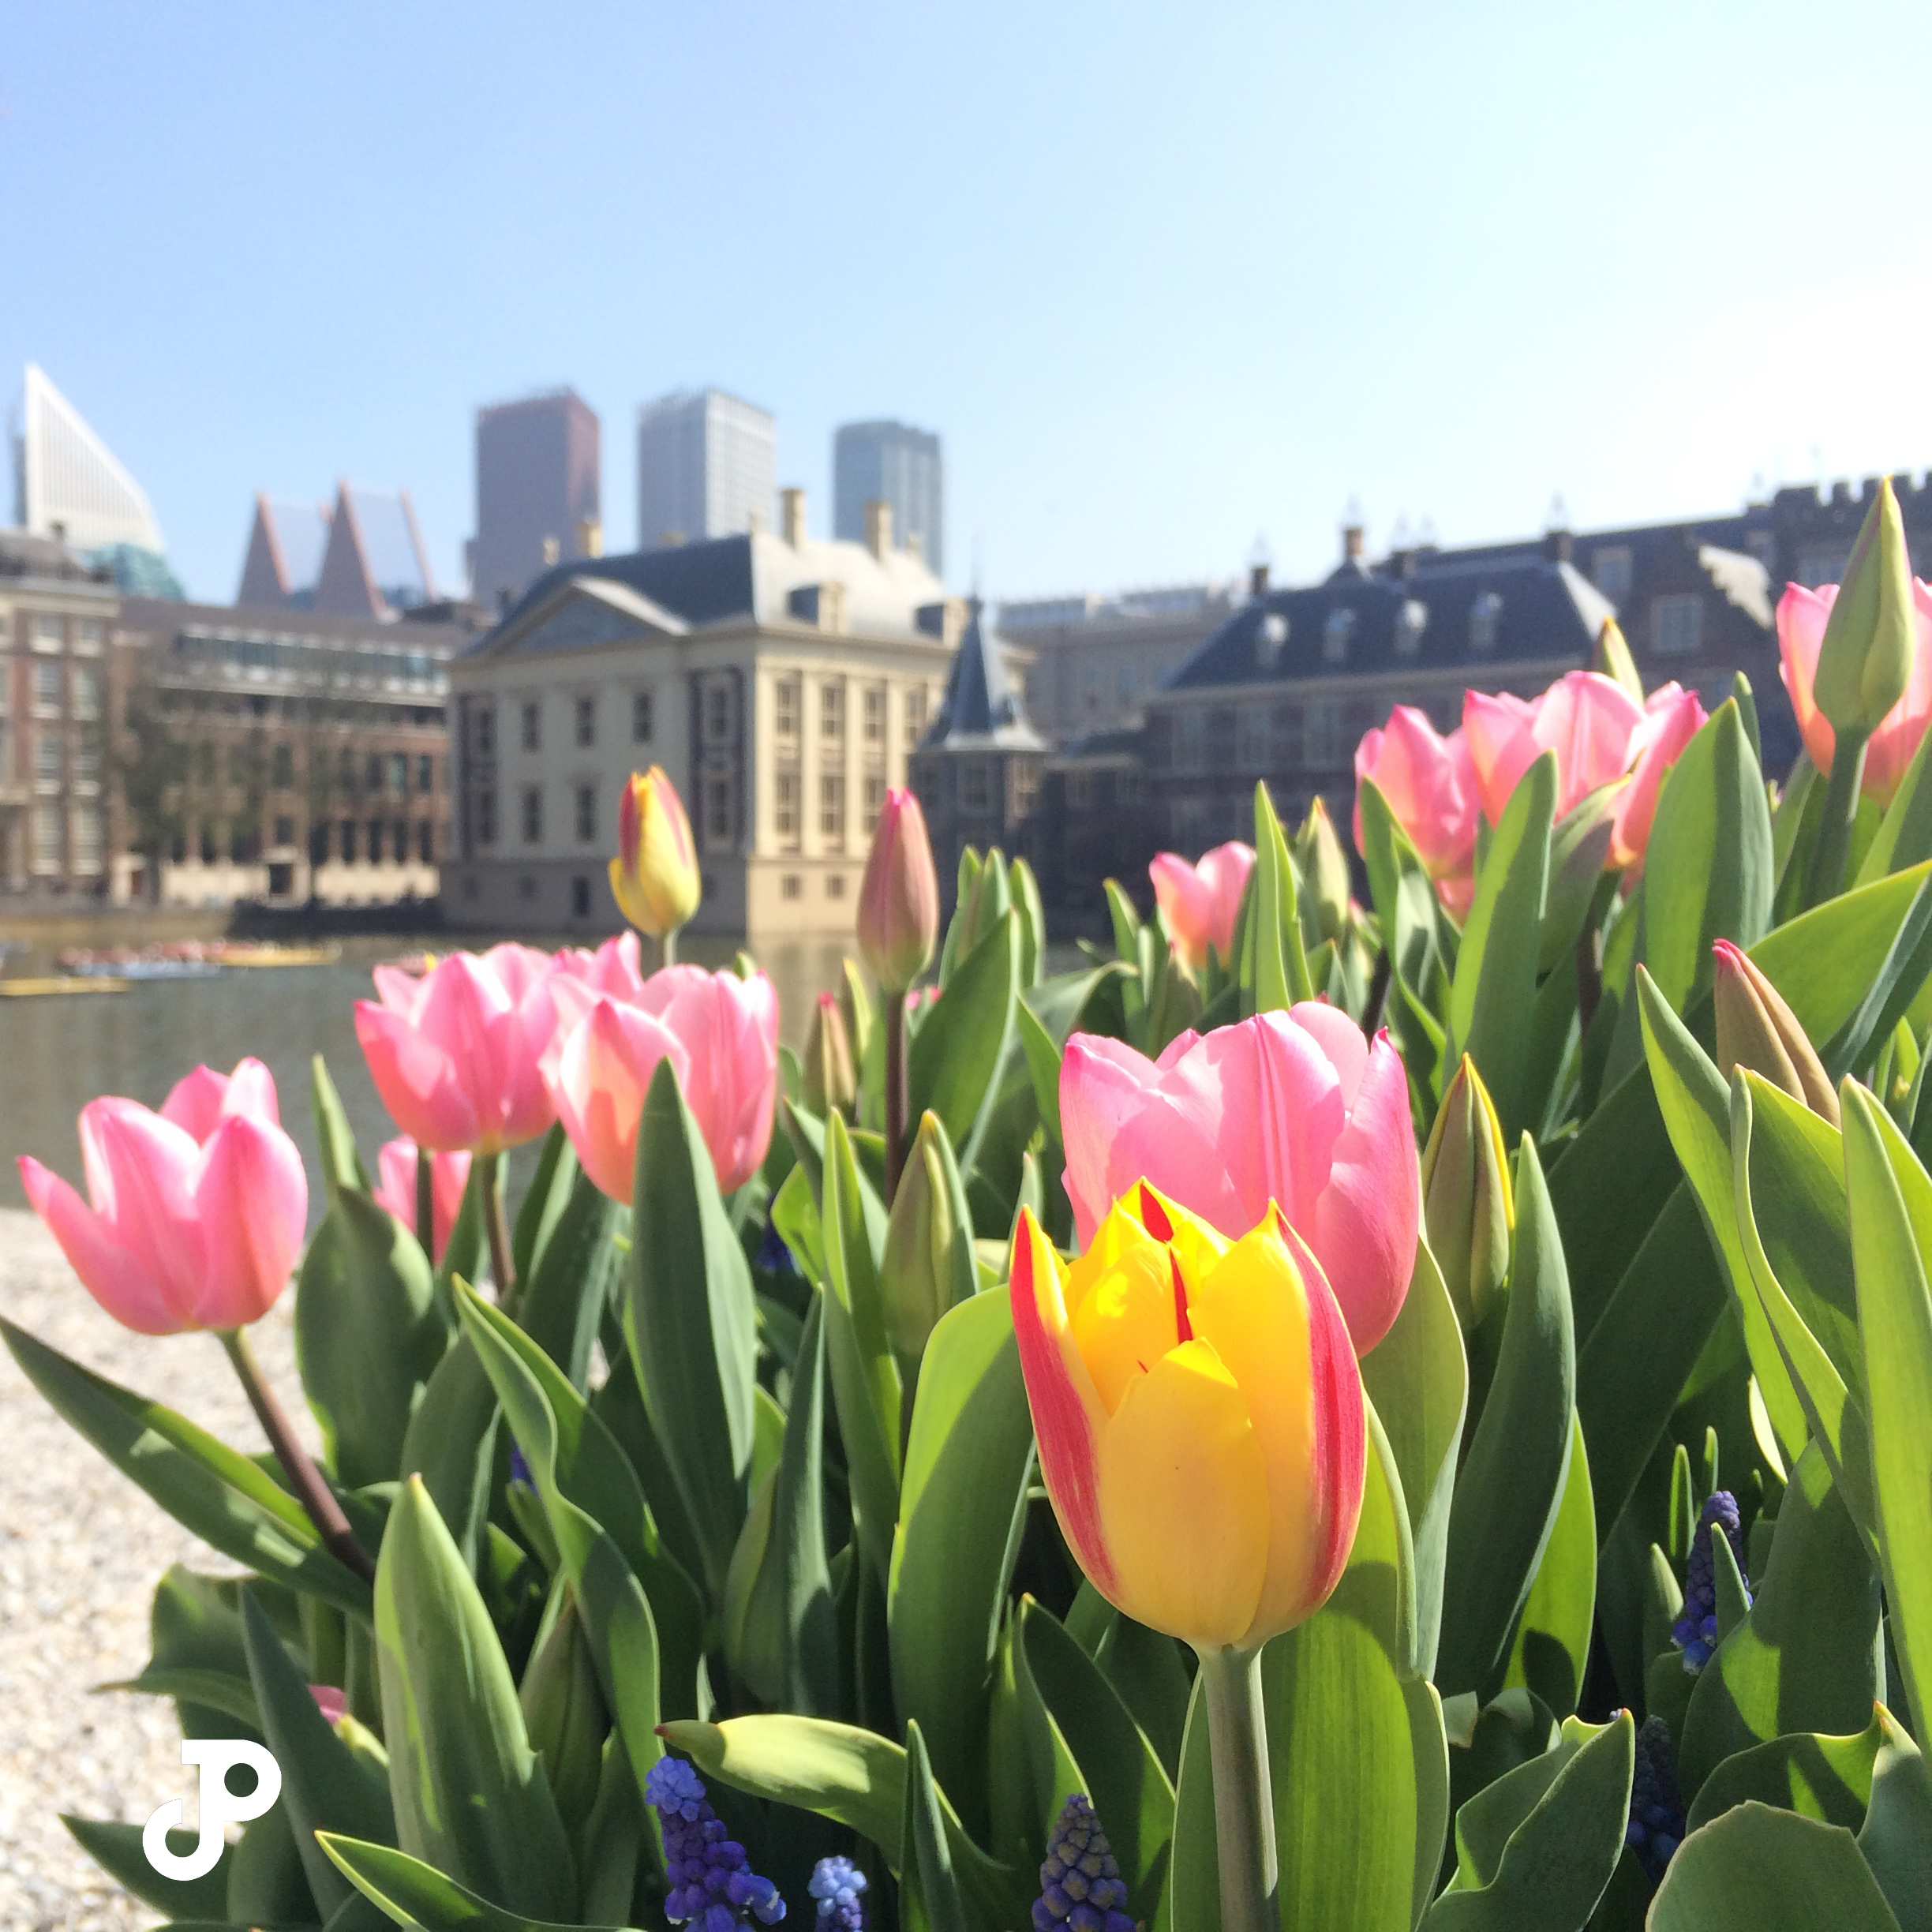 pink and yellow tulips, with the Mauritshuis Museum visible in the background